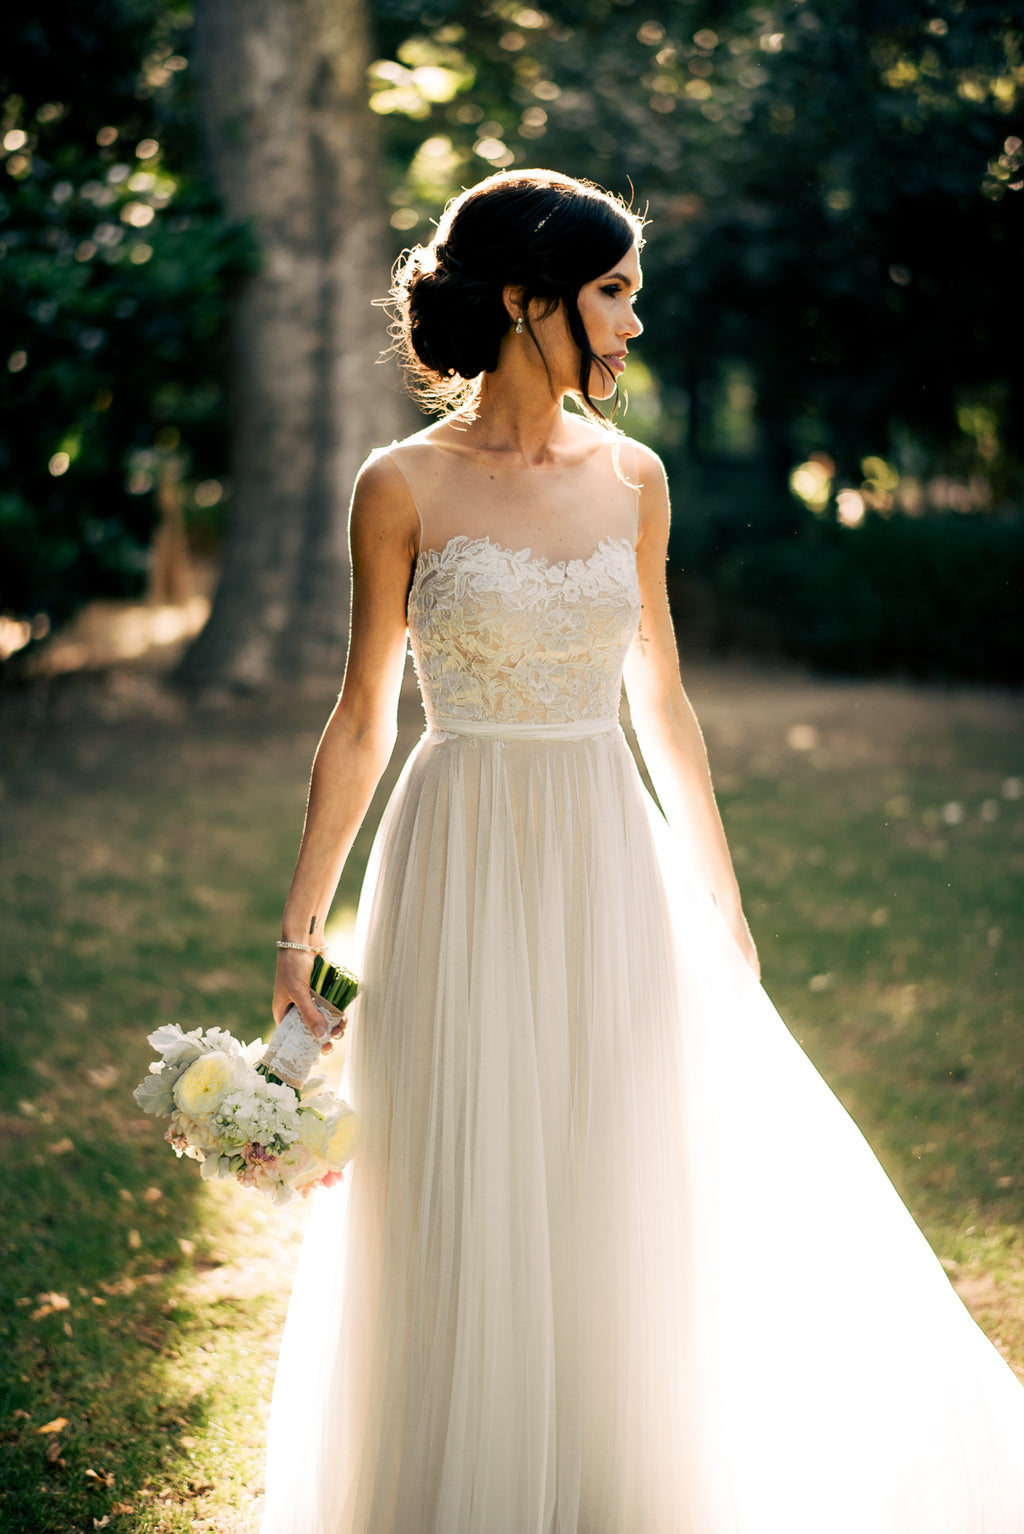 Romantic Open Back Tulle and Lace Wedding Dress - daisystyledress